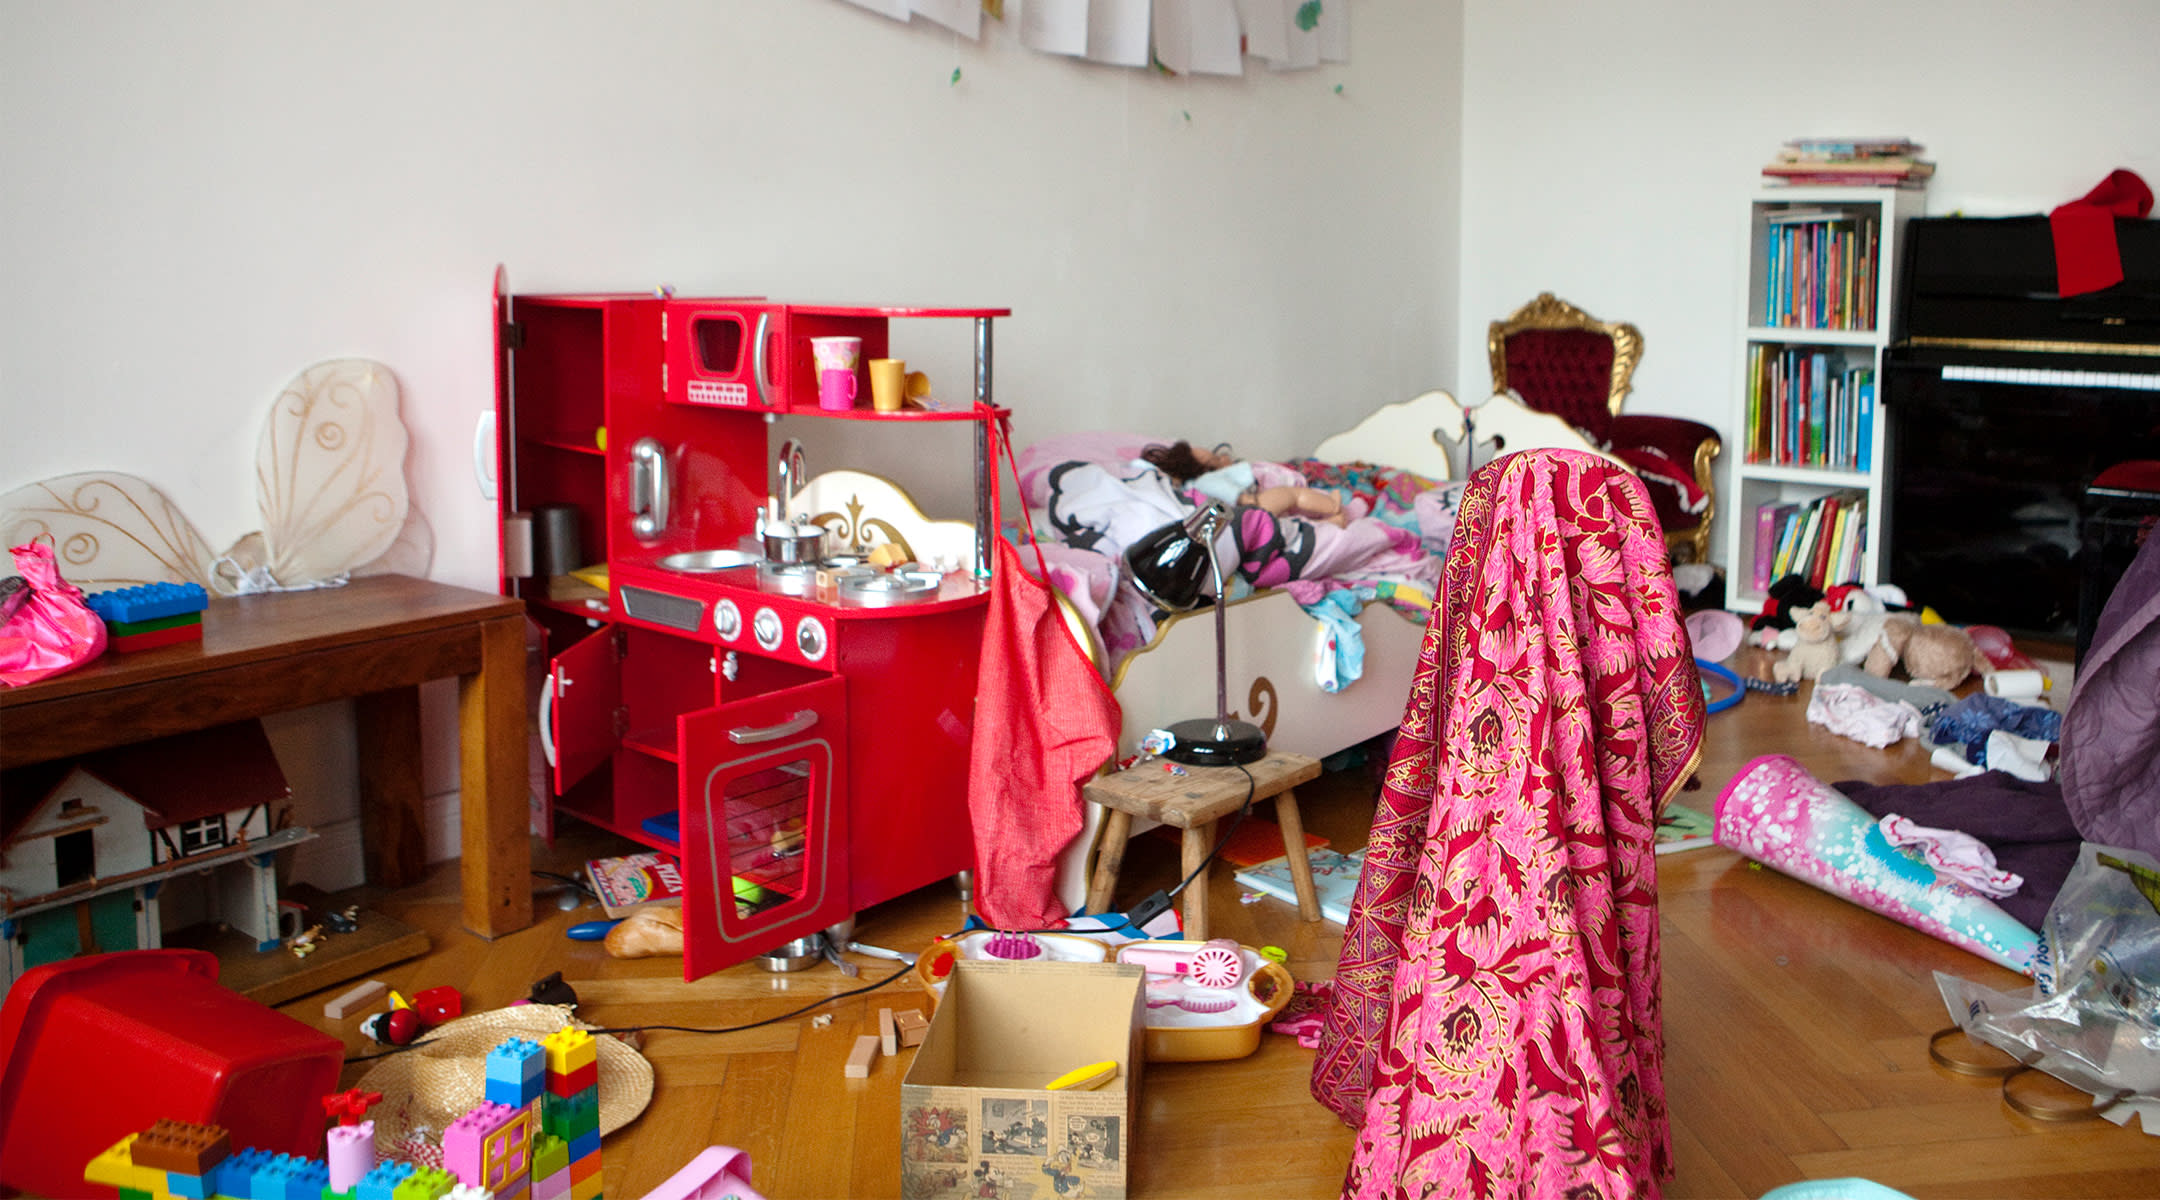 cluttered messy child's room